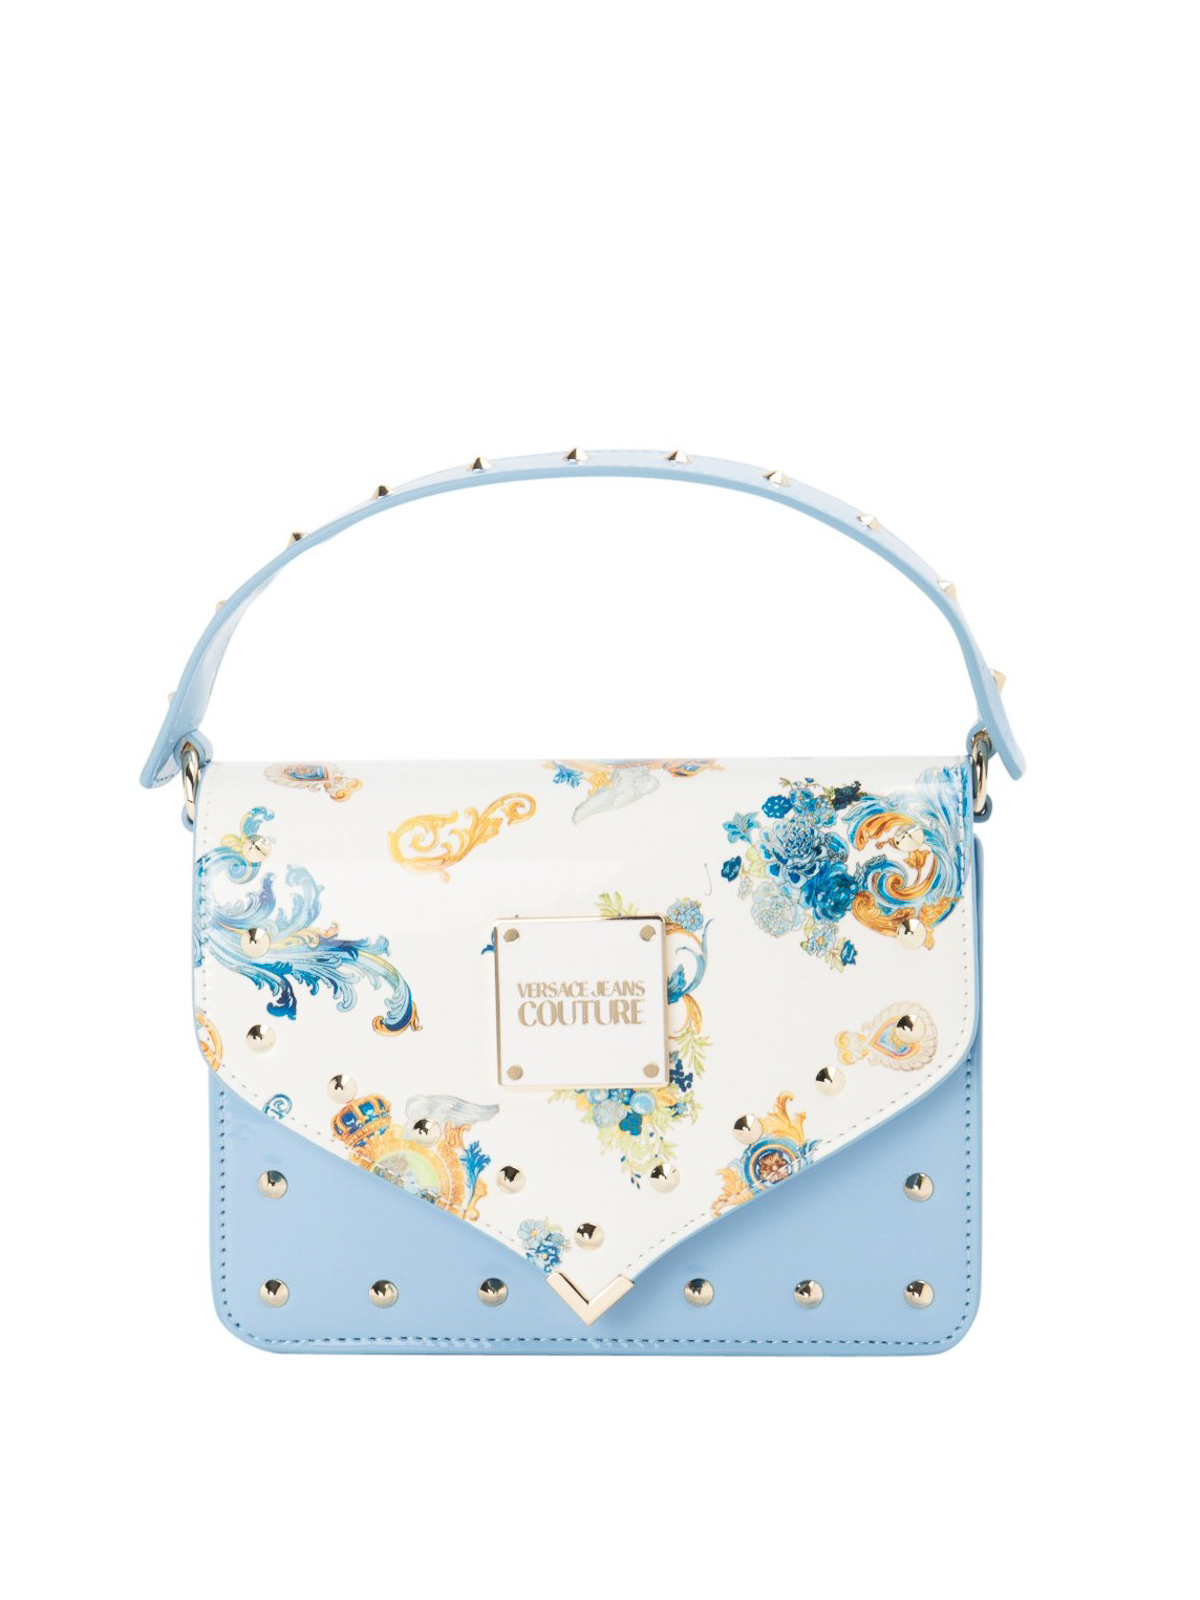 Versace Jeans Couture Crossbody bags ROCOCO PRINTED FLAP CROSSBODY BAG